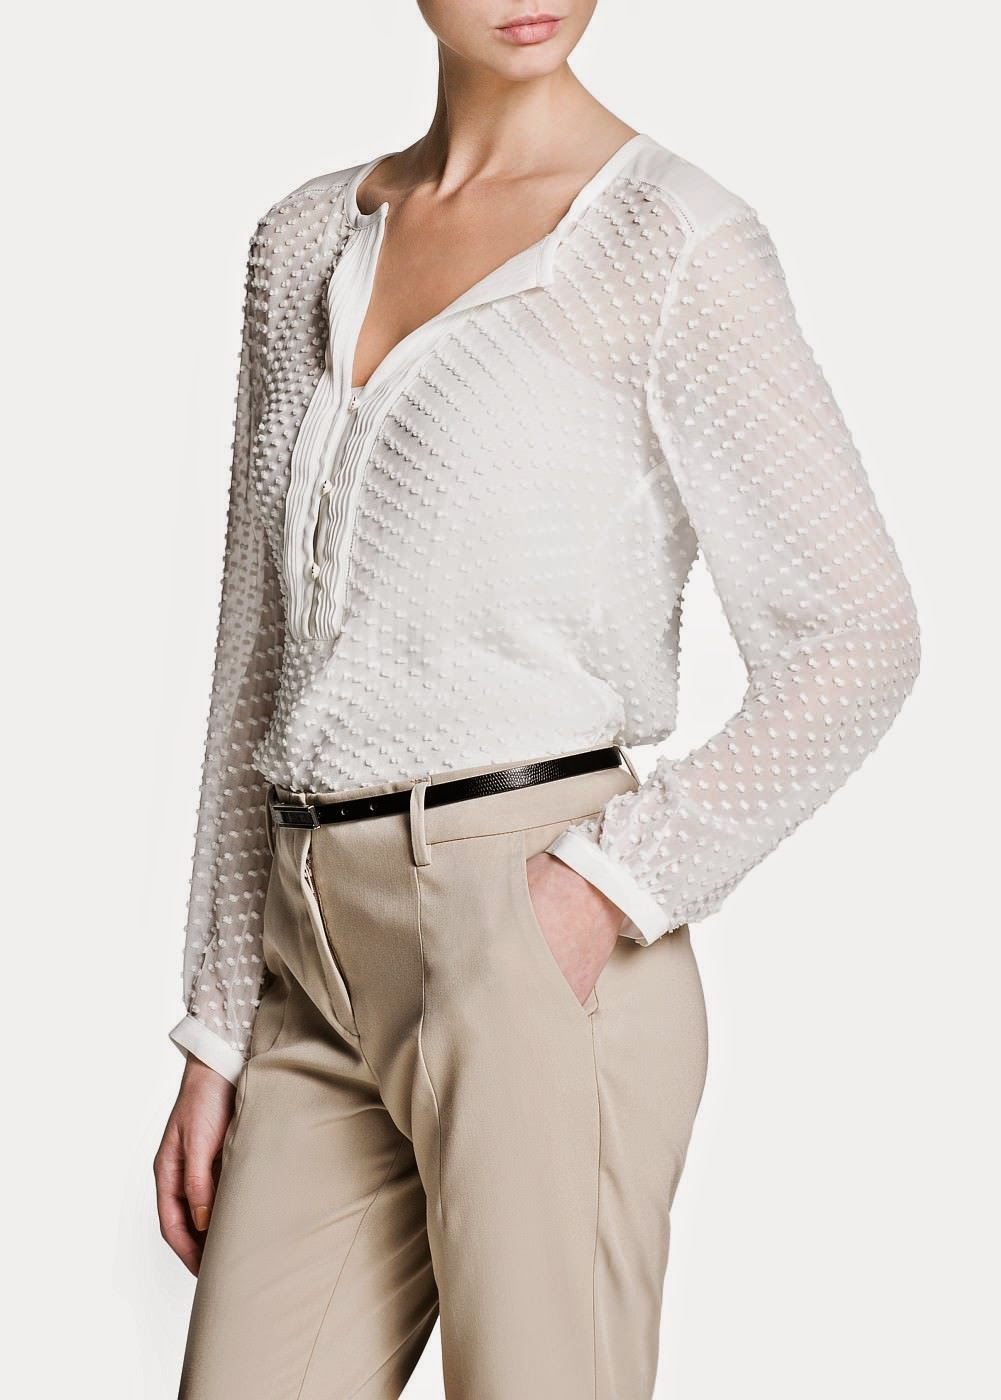 http://shop.mango.com/US/p0/women/clothing/blouses-and-shirts/silk-cotton-blend-plumeti-blouse/?id=21070021_OW&n=1&s=prendas.chaquetas&ident=0_color10_0_1408548695412&ts=1408548695412